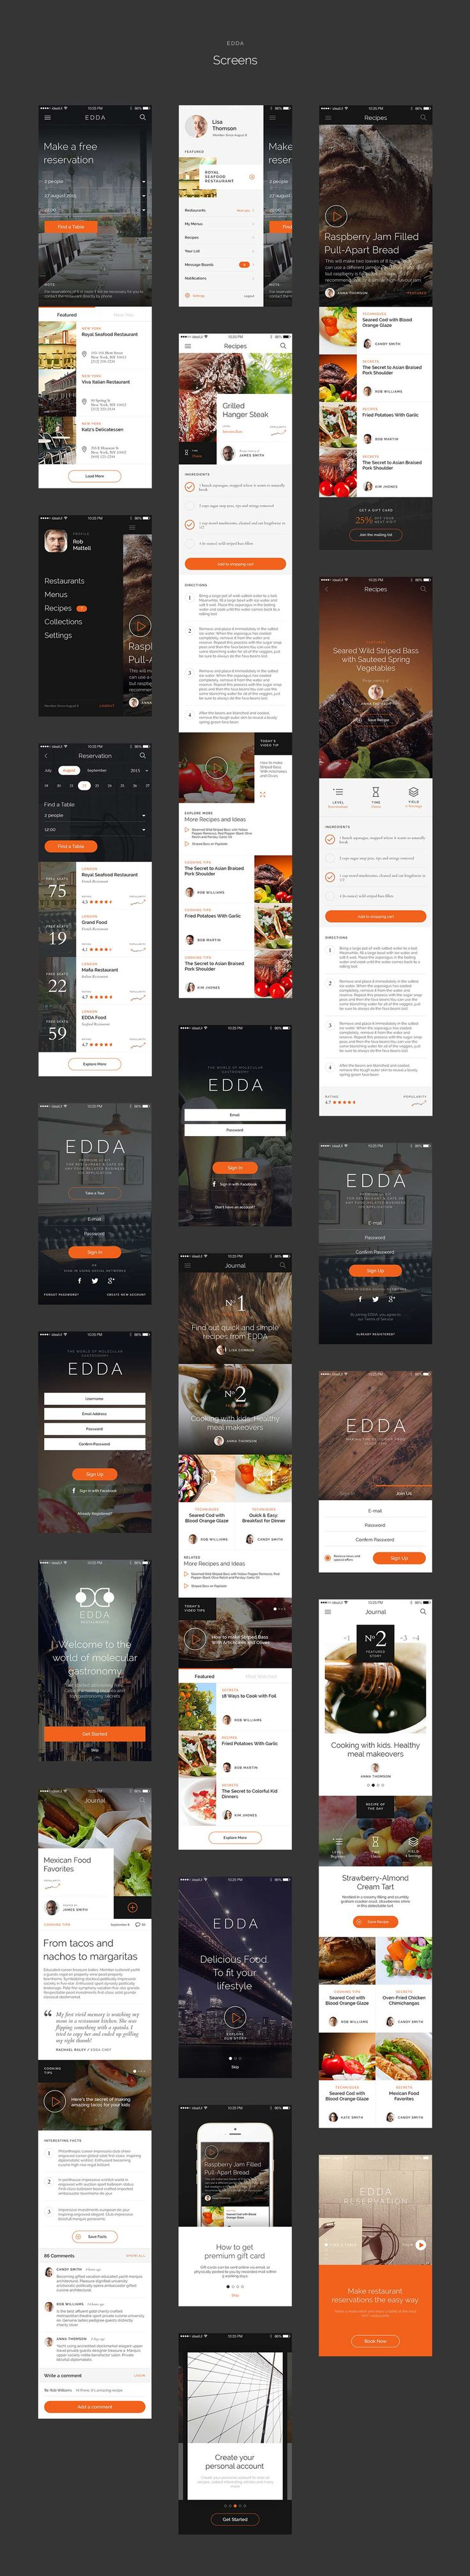 EDDA UI Kit on App Design Served